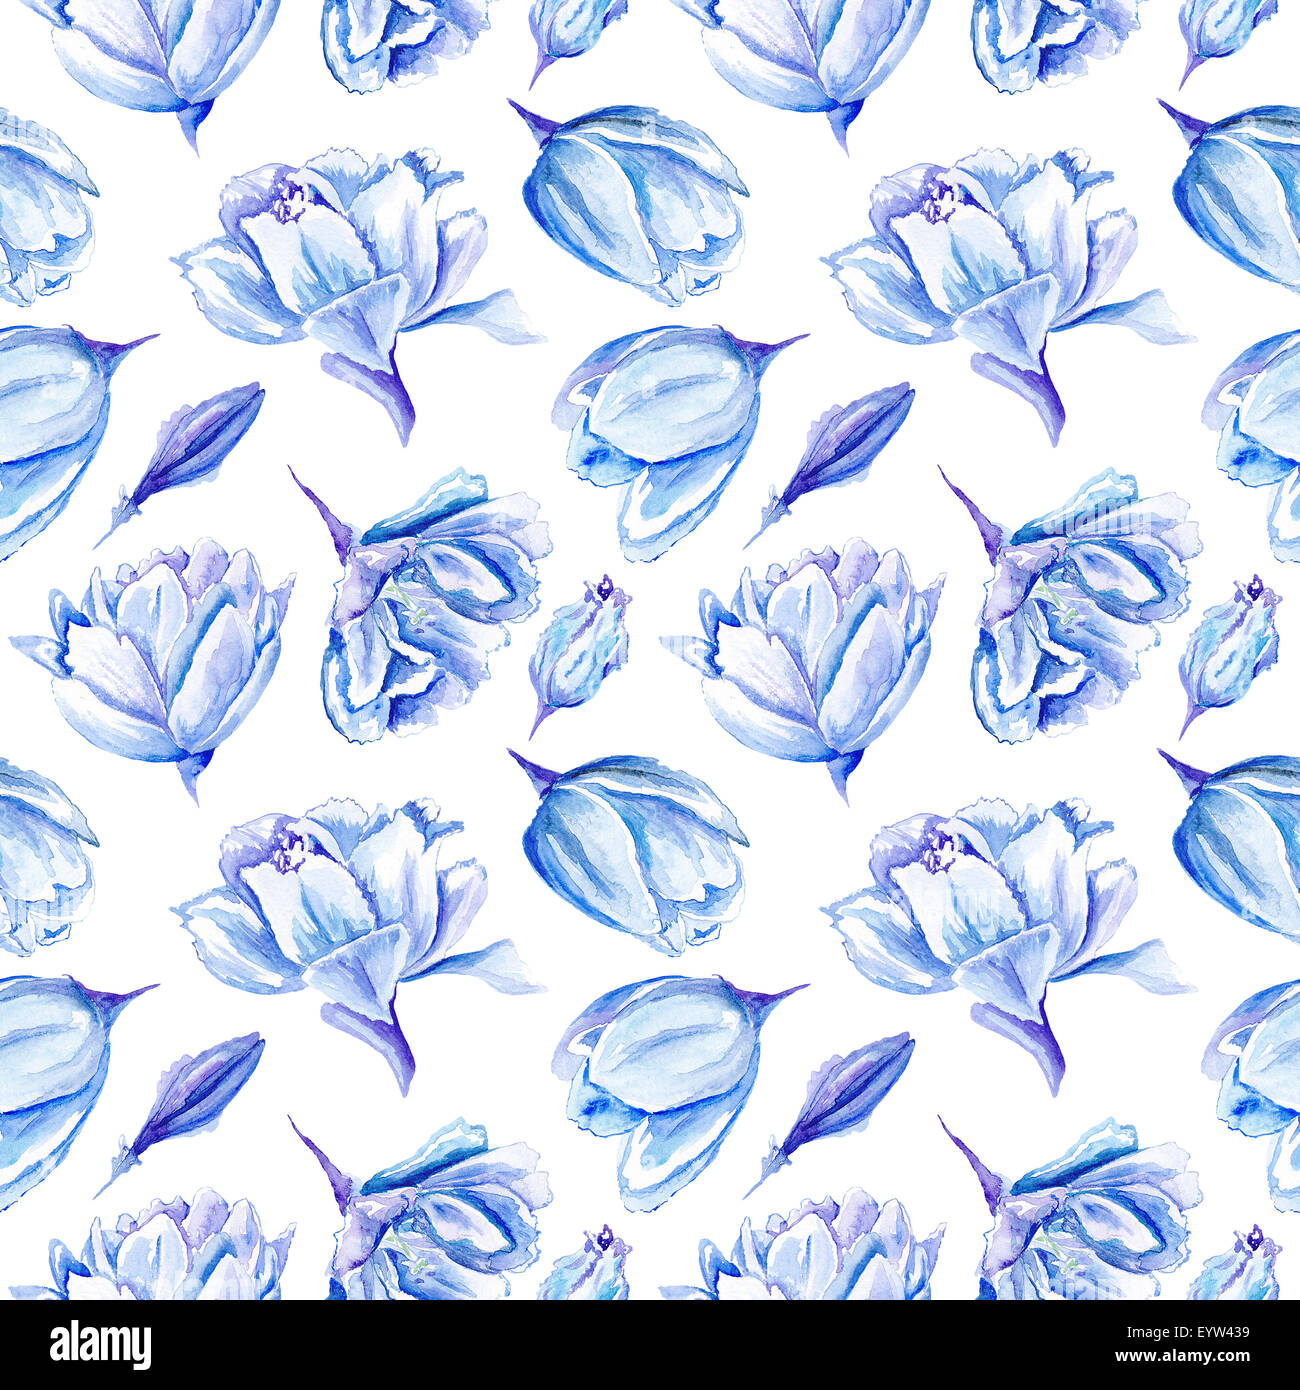 Seamless Passion Floral Background With Indigo Flowers For Bedroom Textile And Wallpaper Design Wedding Cards Invitations